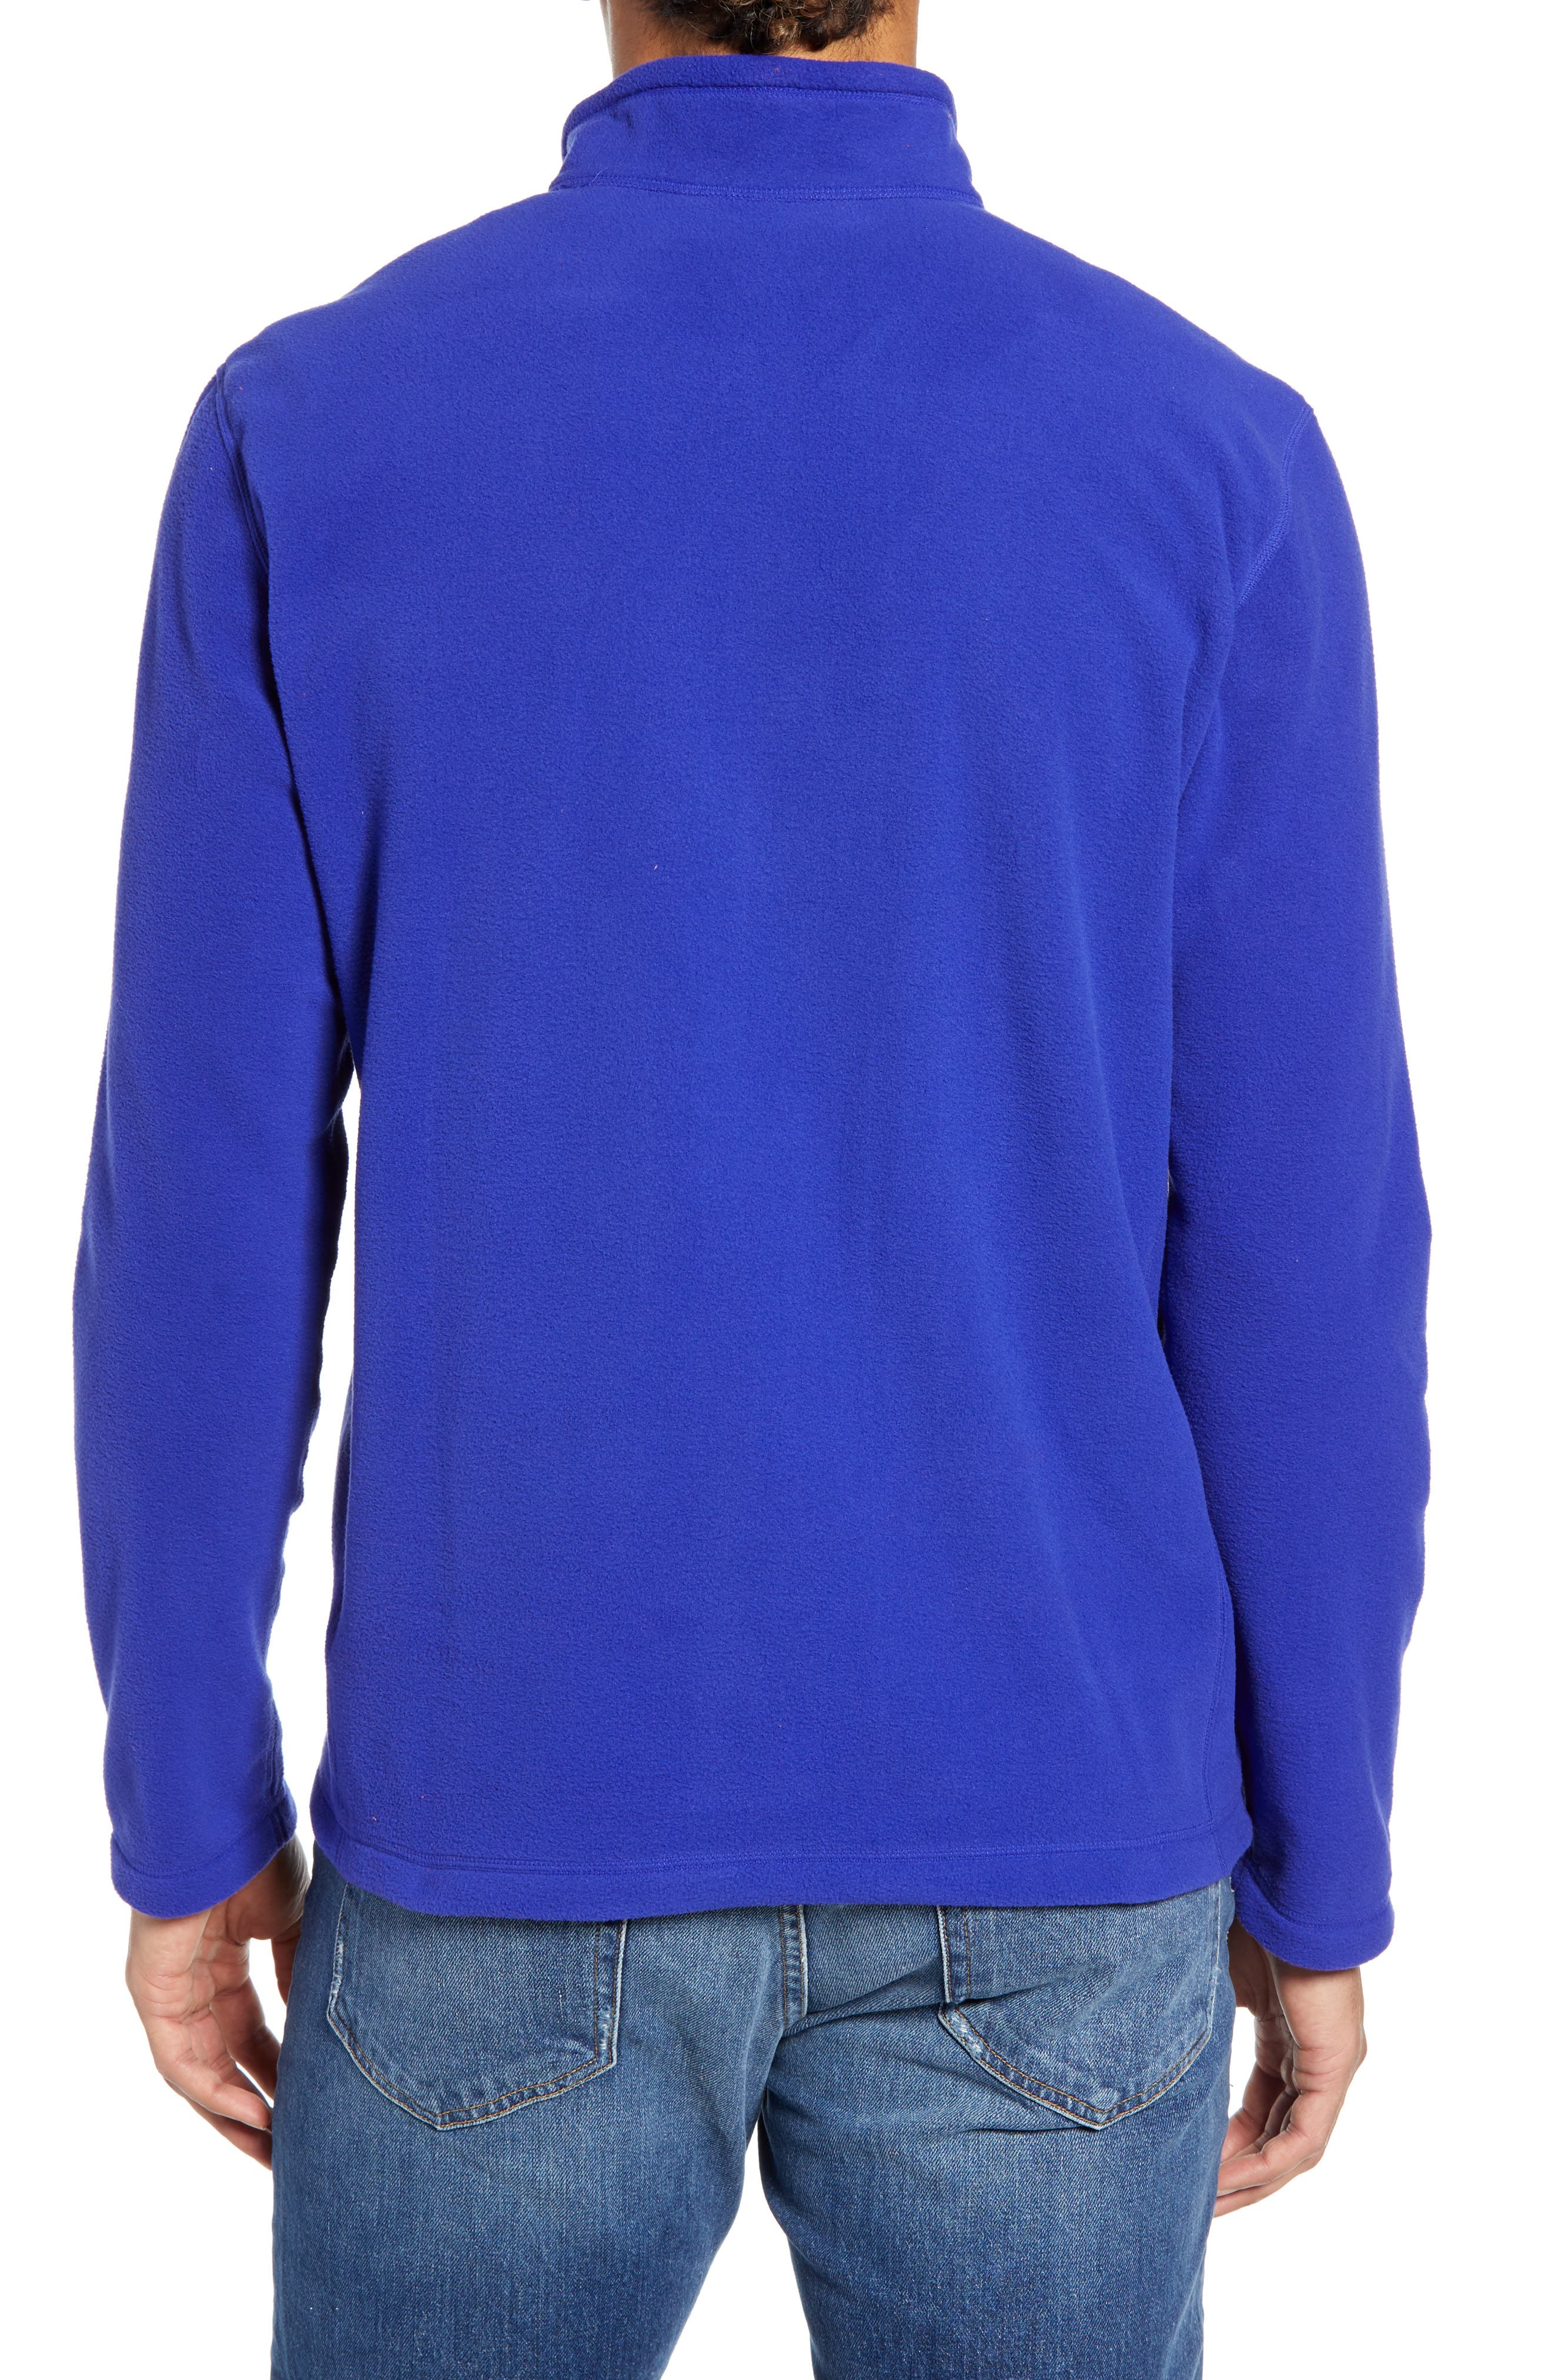 THE NORTH FACE, 'TKA 100 Glacier' Quarter Zip Fleece Pullover, Alternate thumbnail 2, color, AZTEC BLUE